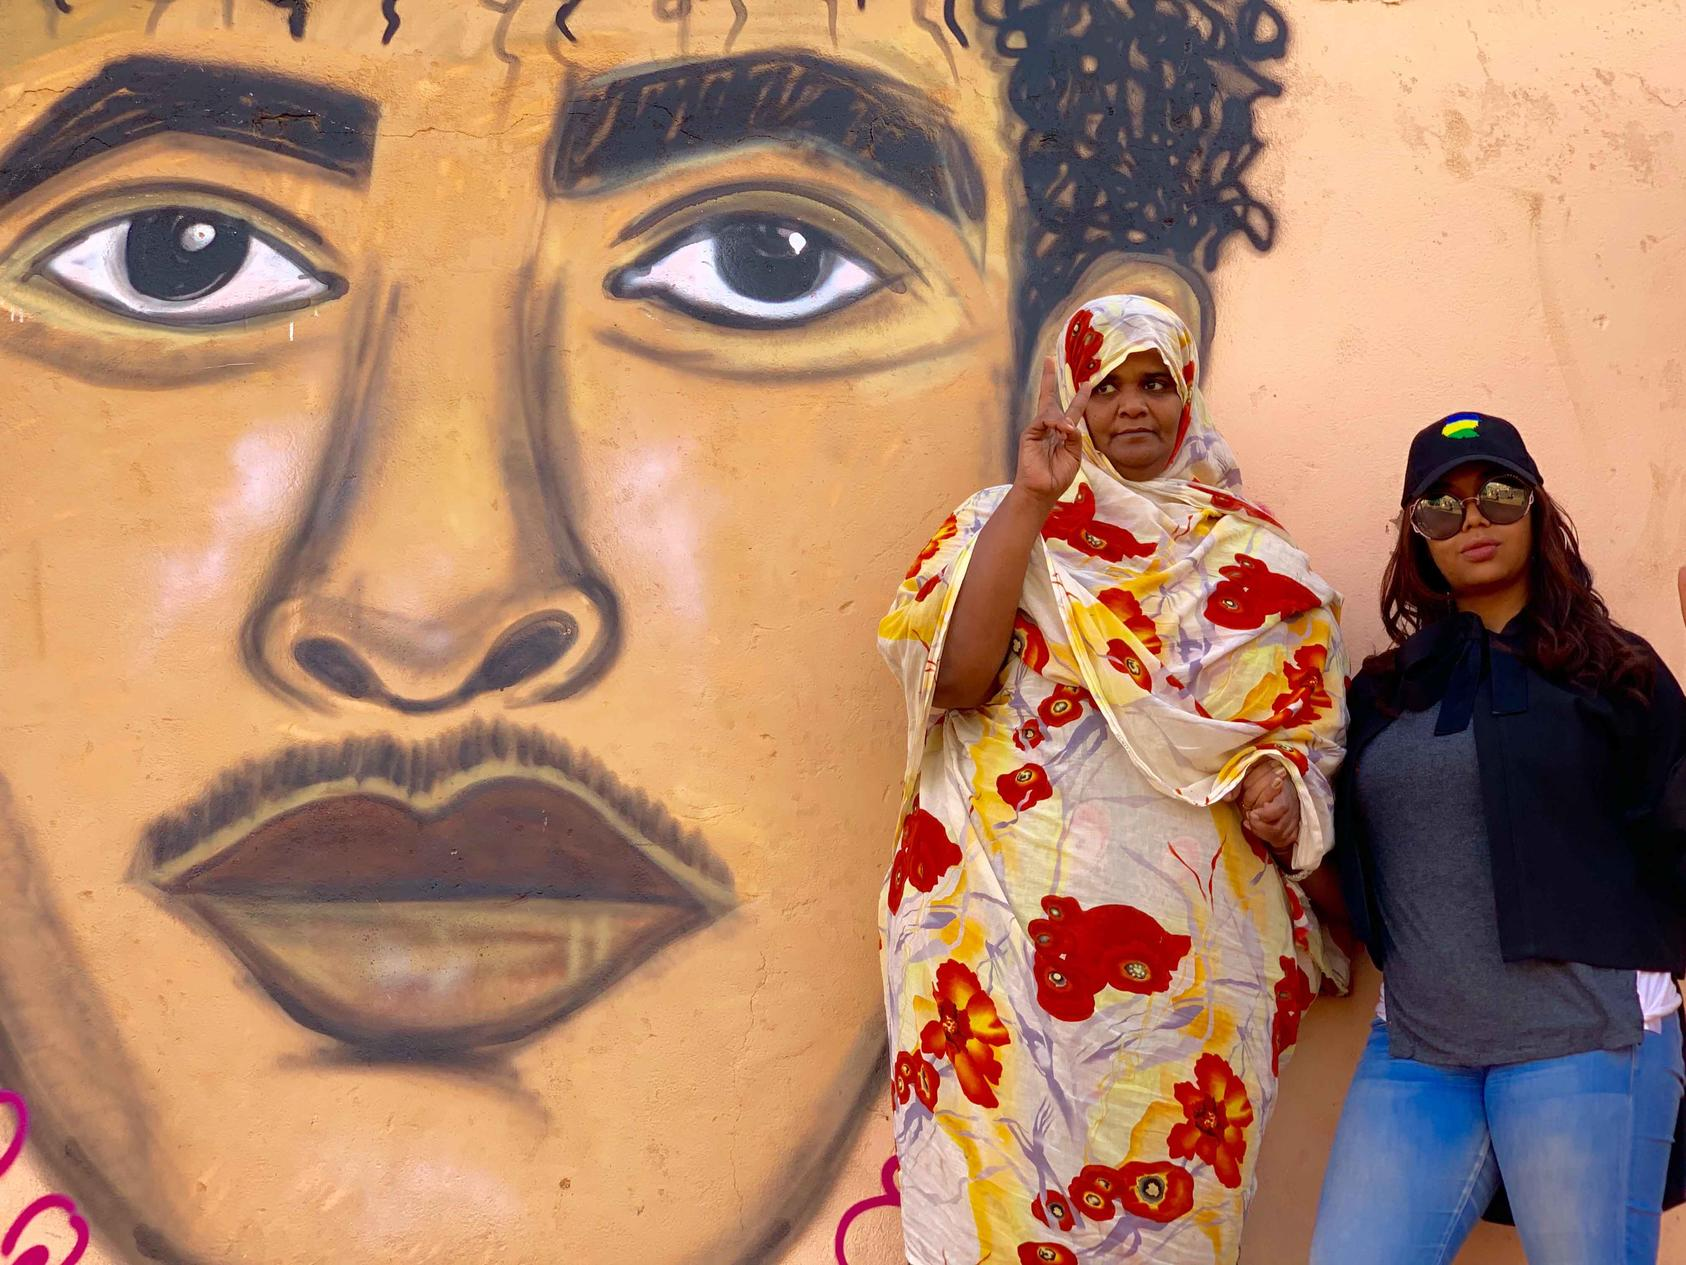 Assil Diab poses with Ahlam Khidr, protest leader and activist, in front of Assil's mural of Ahlam's son Hazaa Izzeldine Jaafar, who was killed while peacefully protesting Bashir's regime in September 2013.